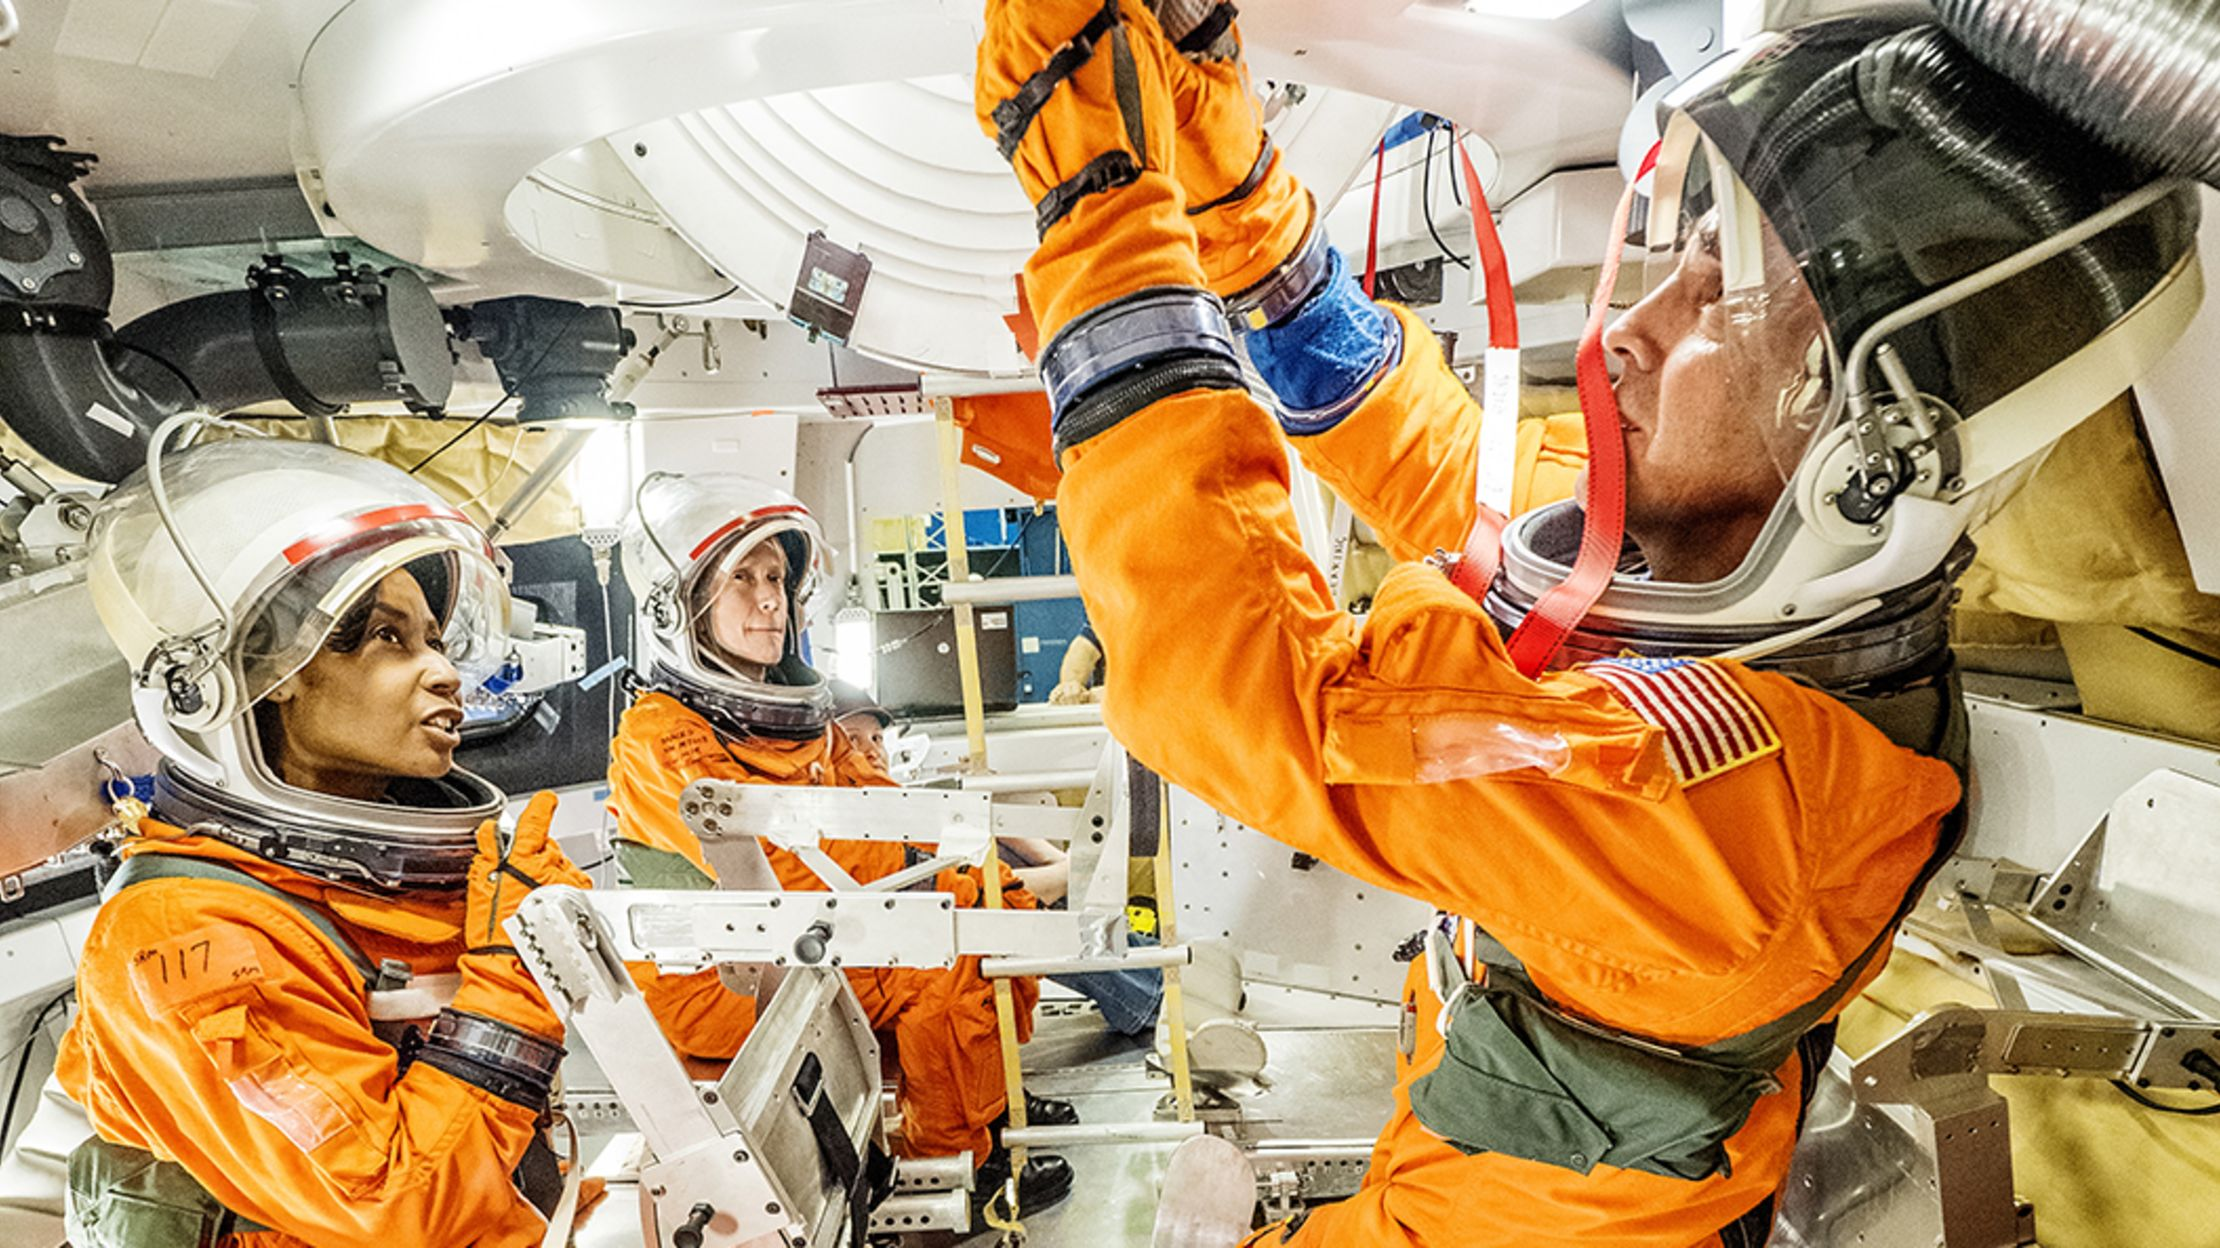 Mars Missions May Cause Dementia-like Symptoms in Astronauts